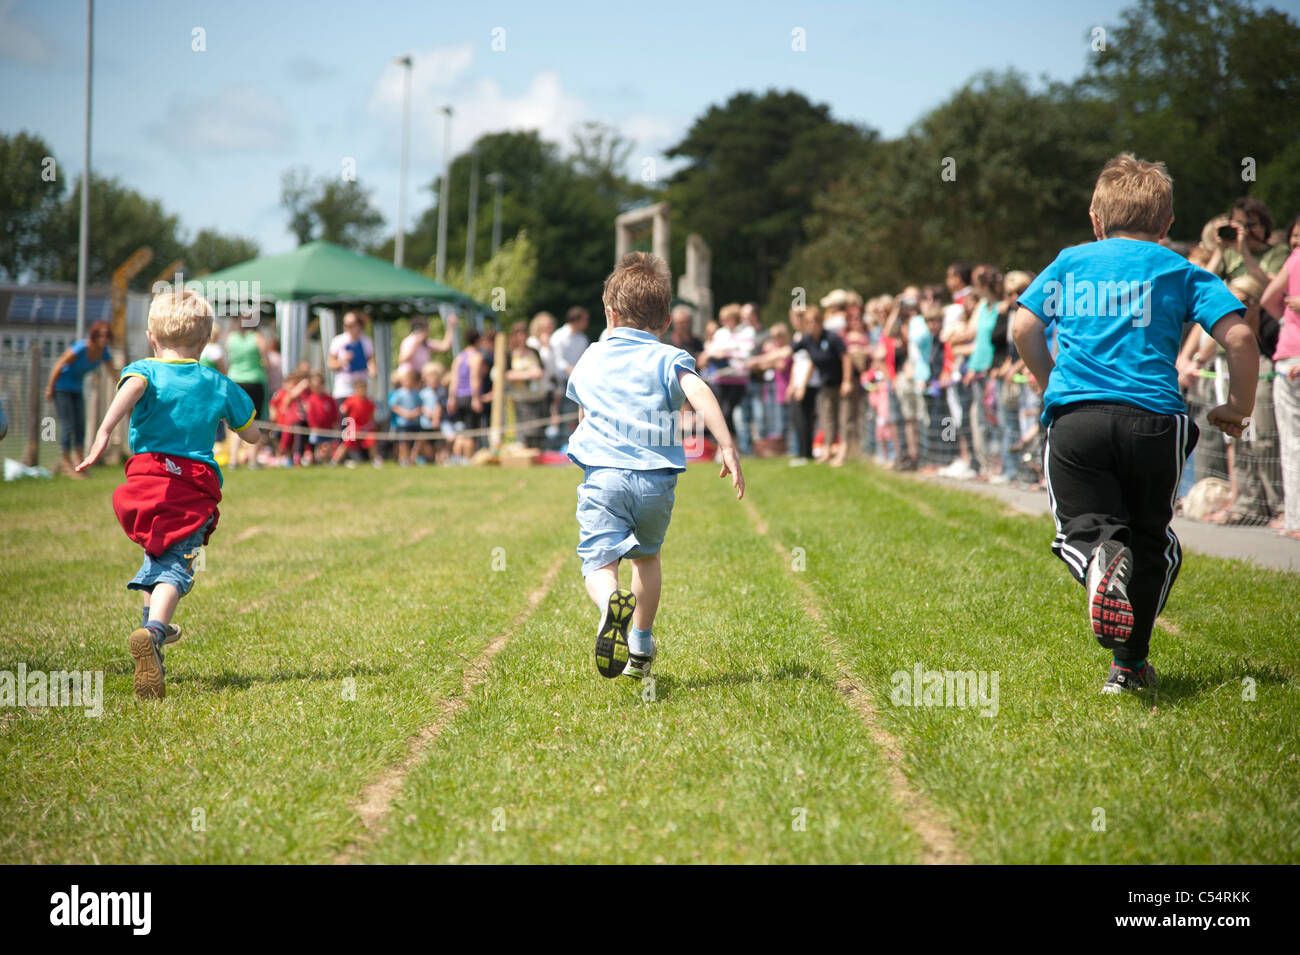 Young small boys racing at the annual School sports day at a small primary school, UK - Stock Image